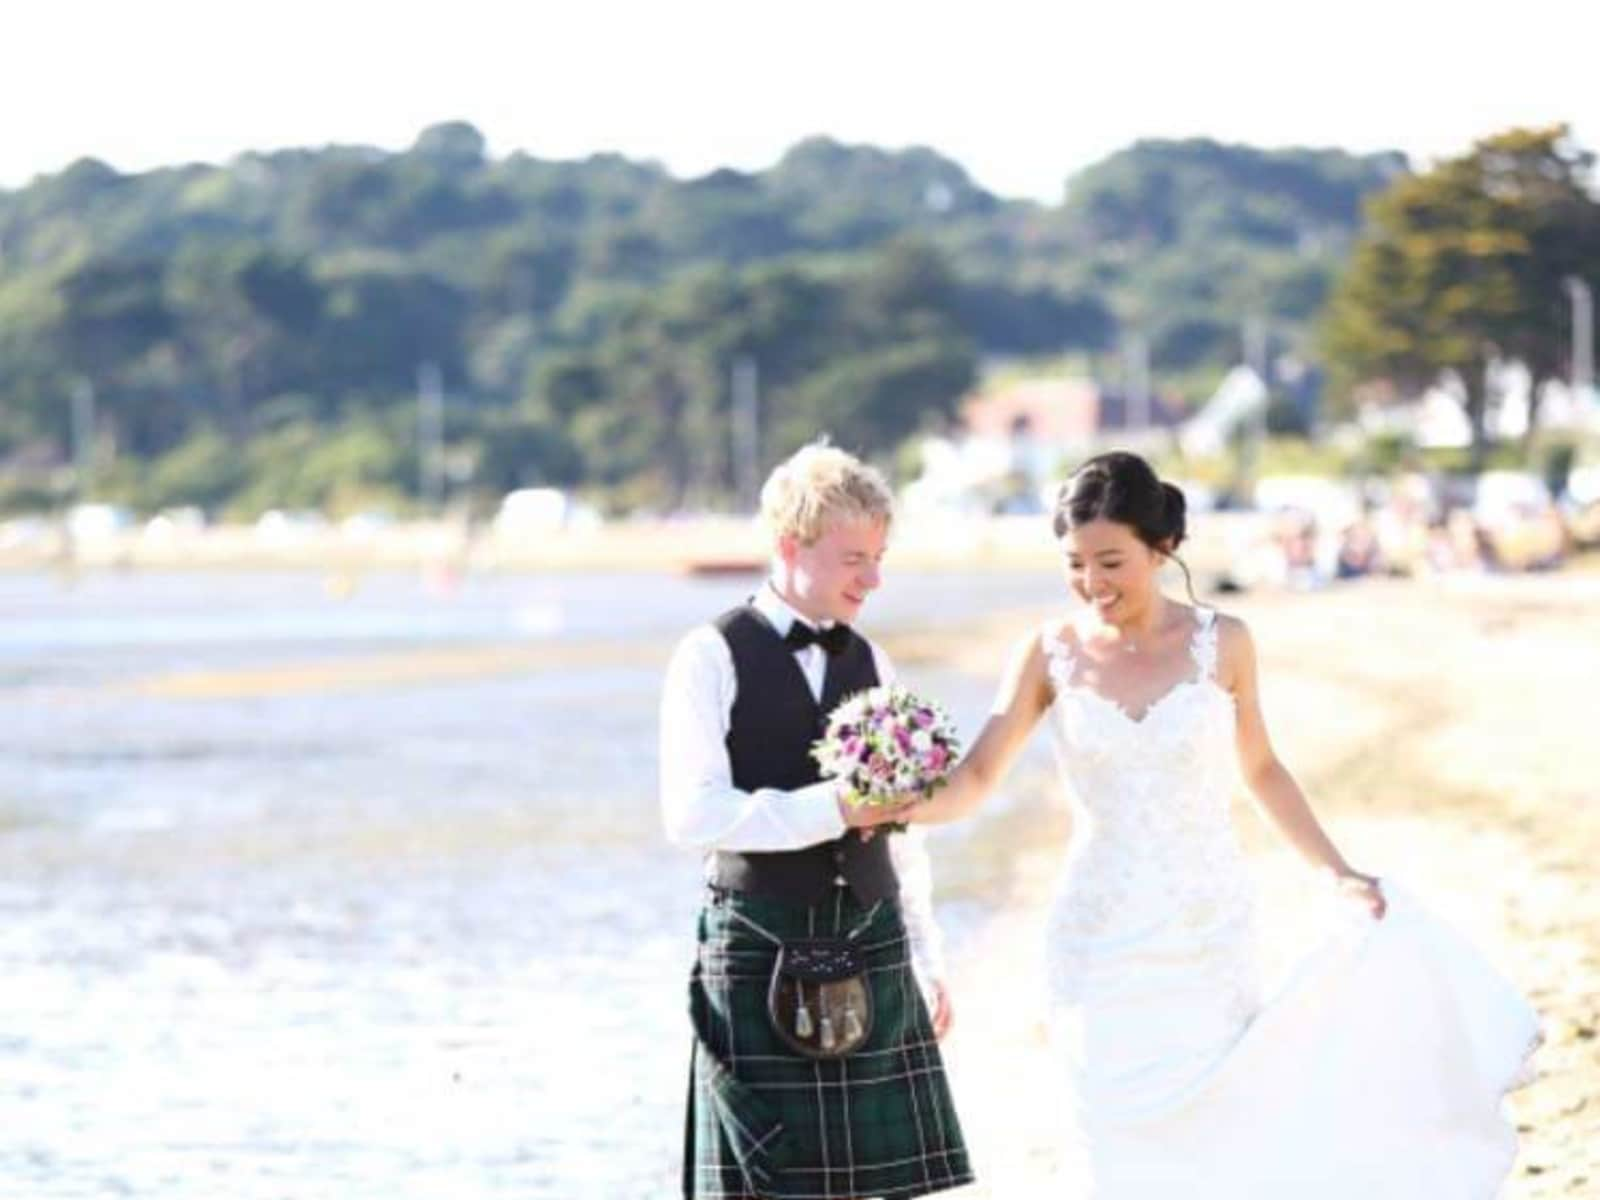 Andrew & Shu ling from Dorchester, United Kingdom